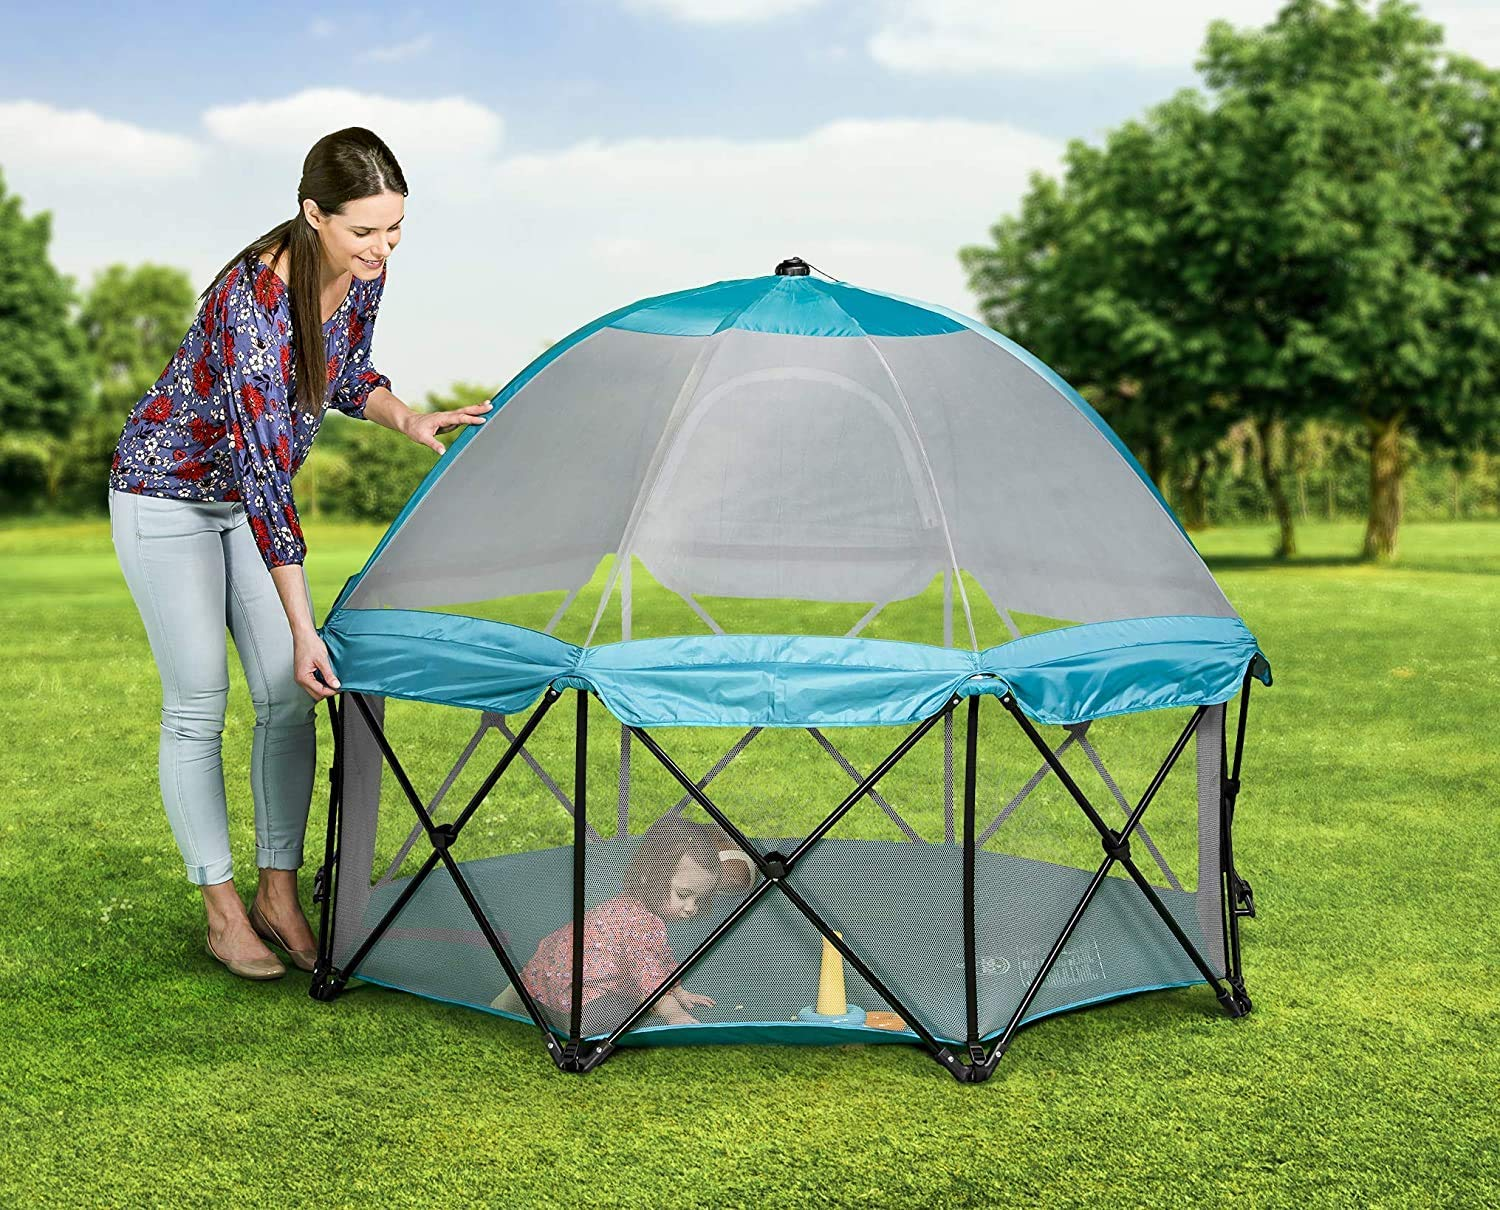 Regalo 8 Panel Foldable and Portable Play Yard with Carrying Case and Full Coverage Canopy Teal